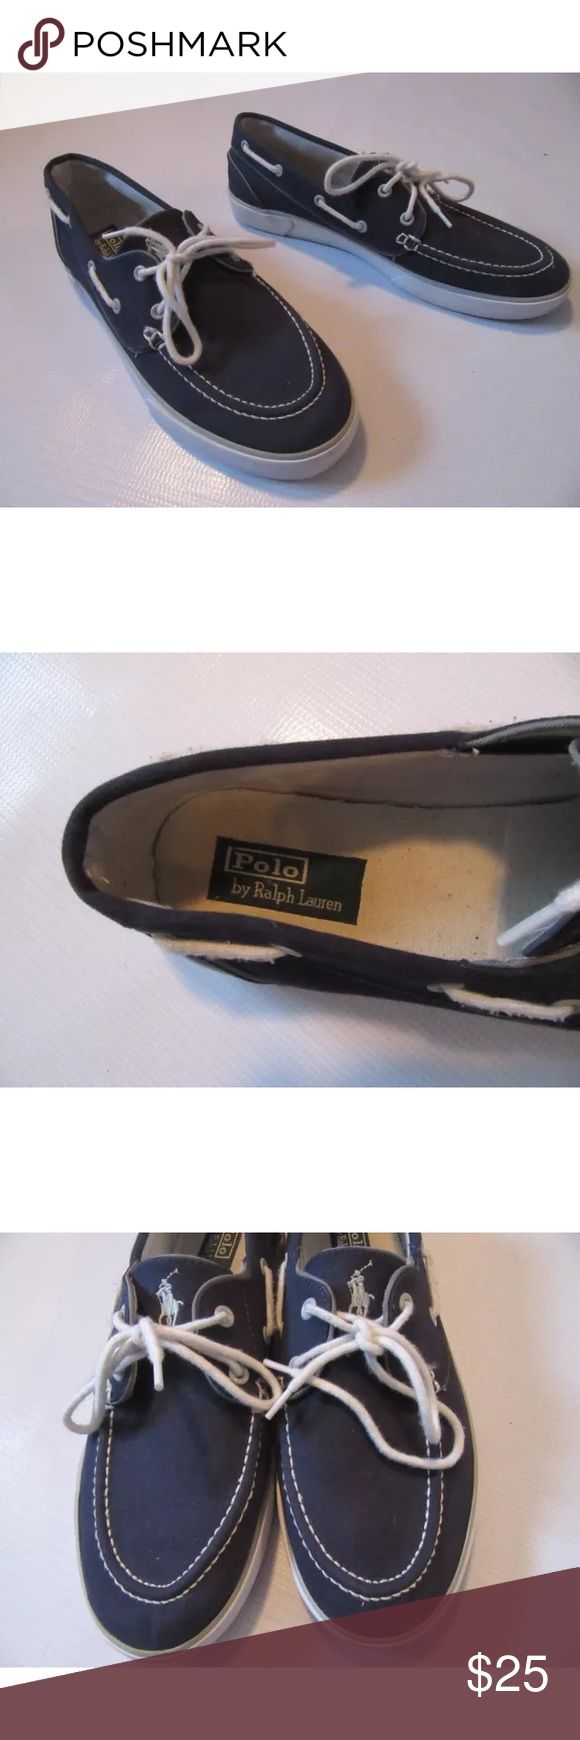 Polo by Ralph Lauren Lander boat shoes Item is in 7/10 condition. Navy blue & white Lander boat shoes • Lace fasten • Deck shoe lacing to sides • Metal eyelets • Embroidered logo detail to tongue • Double stitch detail to upper • Contrast colour piping • Padded insole • Vulcanised white rubber sole with logo detail to heel • Canvas upper, rubber sole. Polo by Ralph Lauren Shoes Boat Shoes